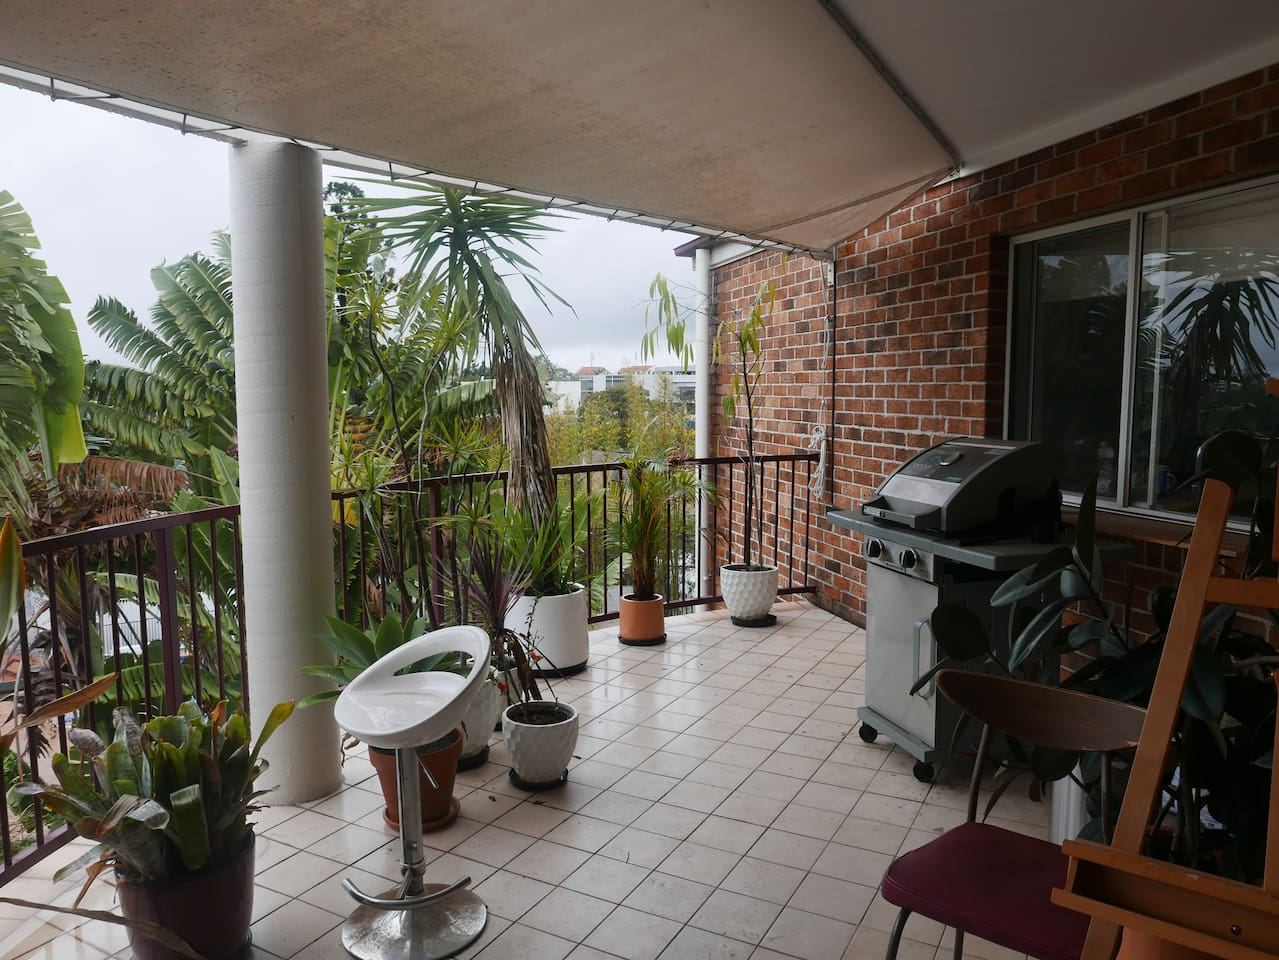 2 bedroom apartment with city views  in leafy Taringa suburb near all transports. 10 minutes for the City